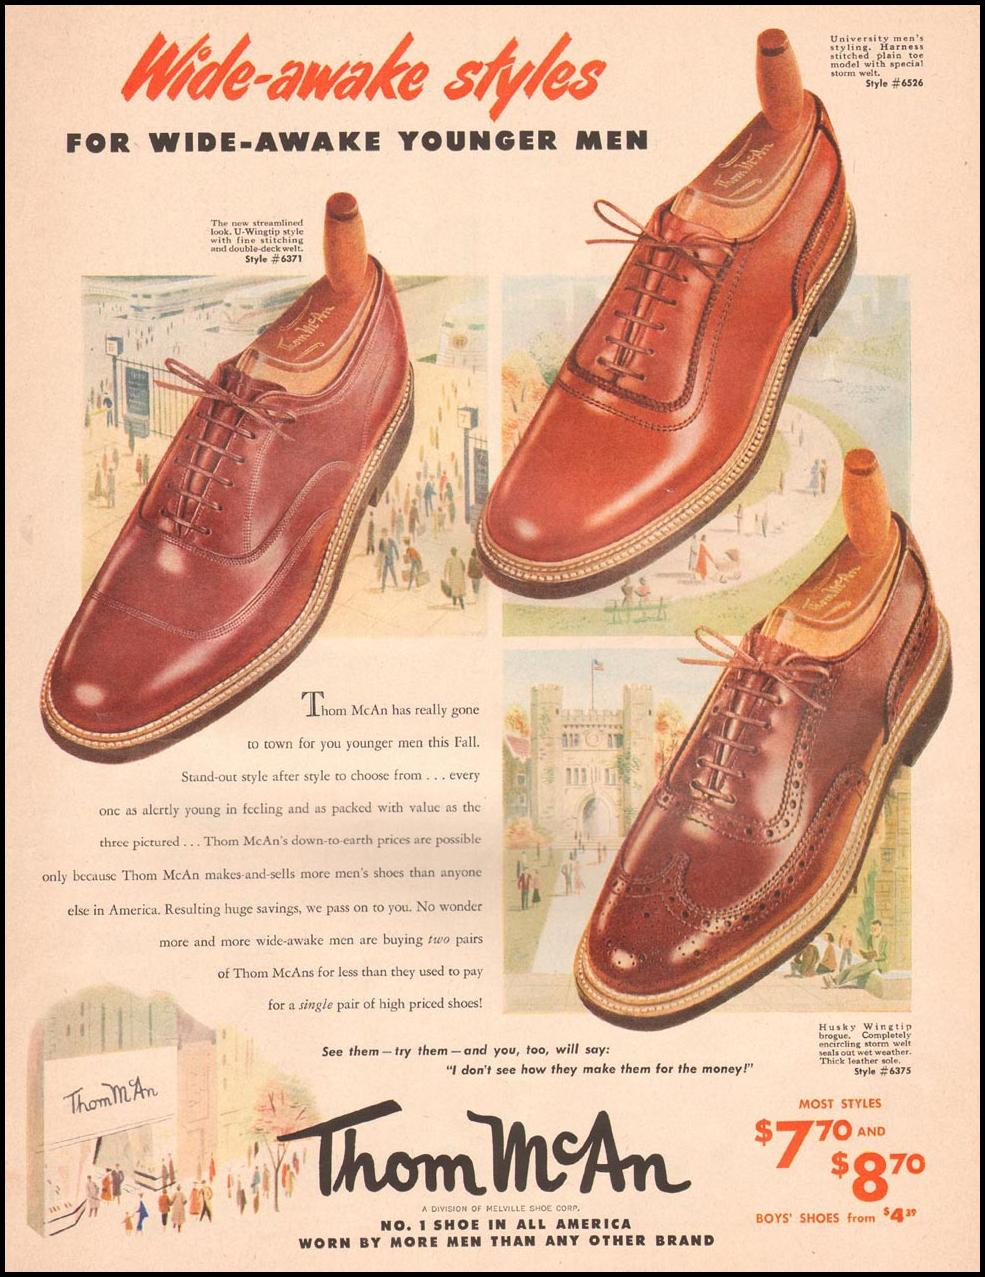 THOM MCAN SHOES LIFE 09/03/1951 p. 93